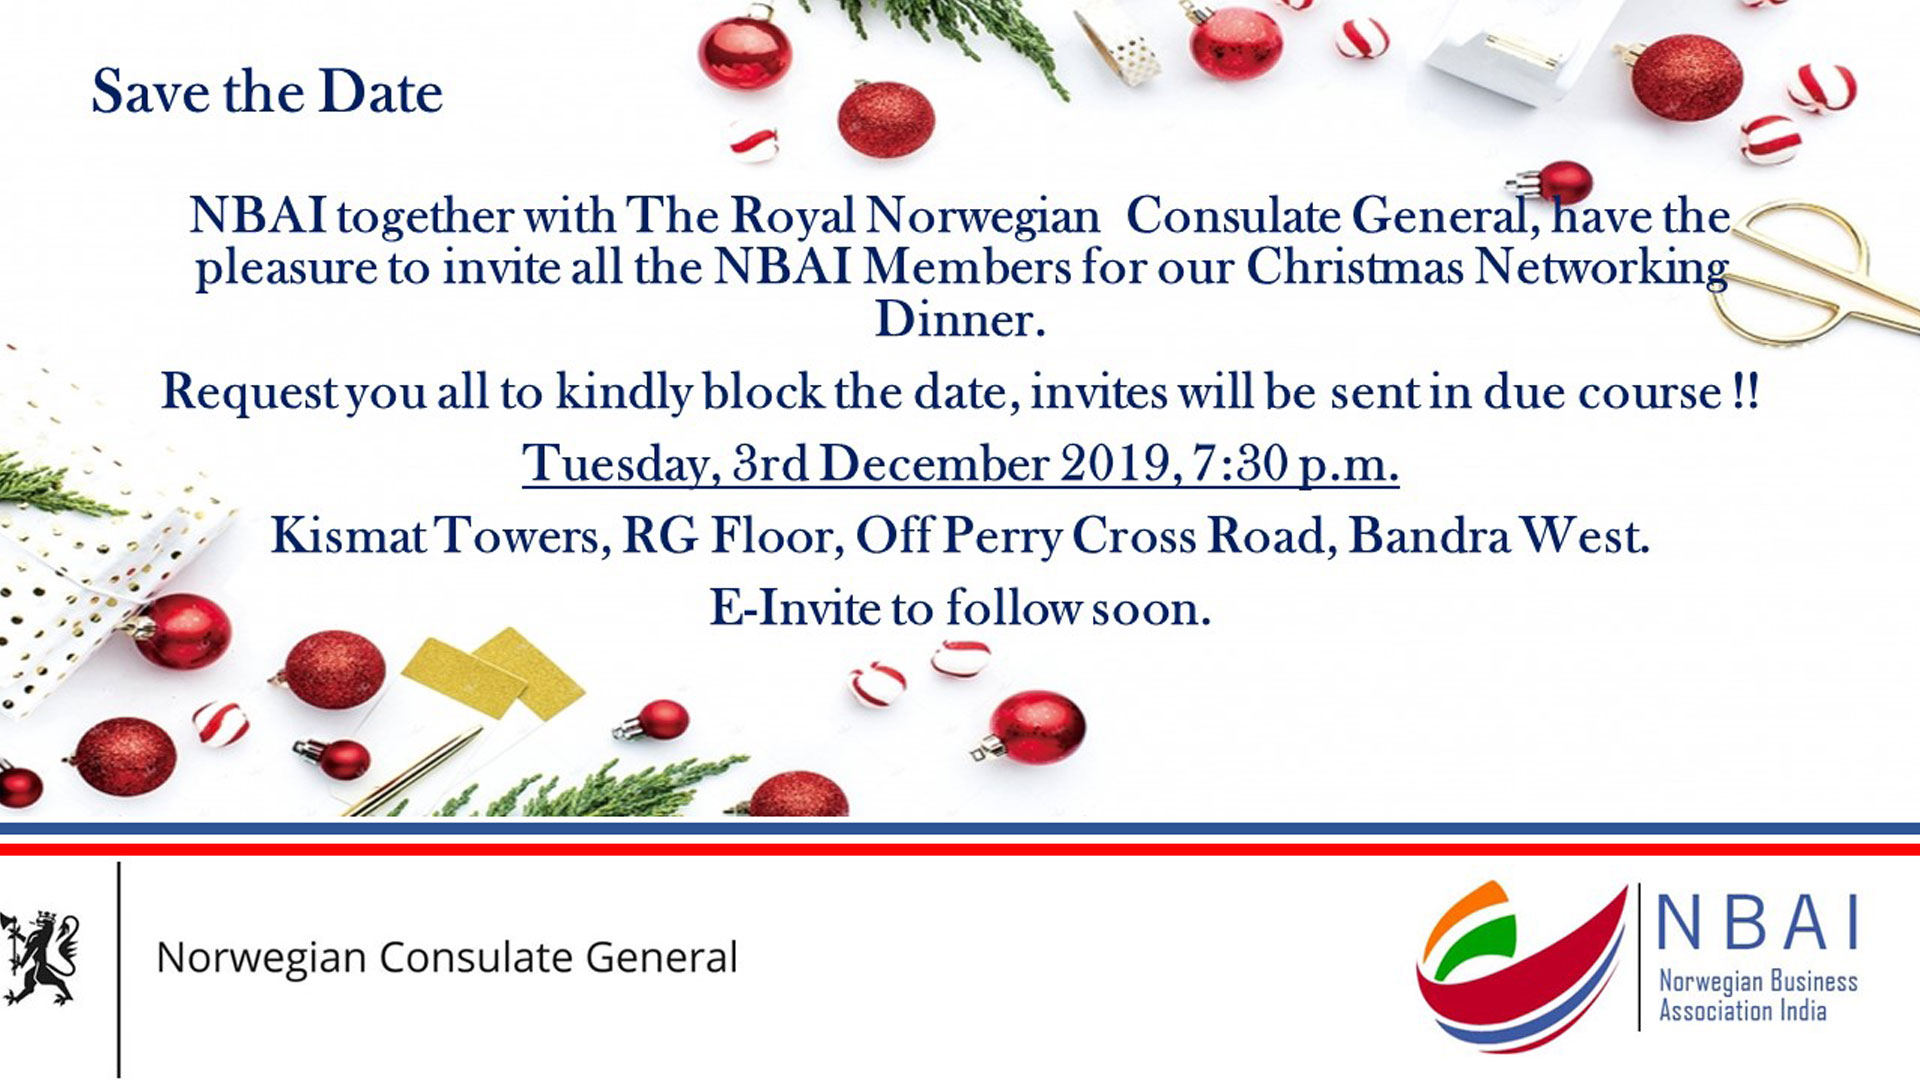 NBAI MEMBERS CHRISTMAS NETWORKING DINNER SAVE THE DATE